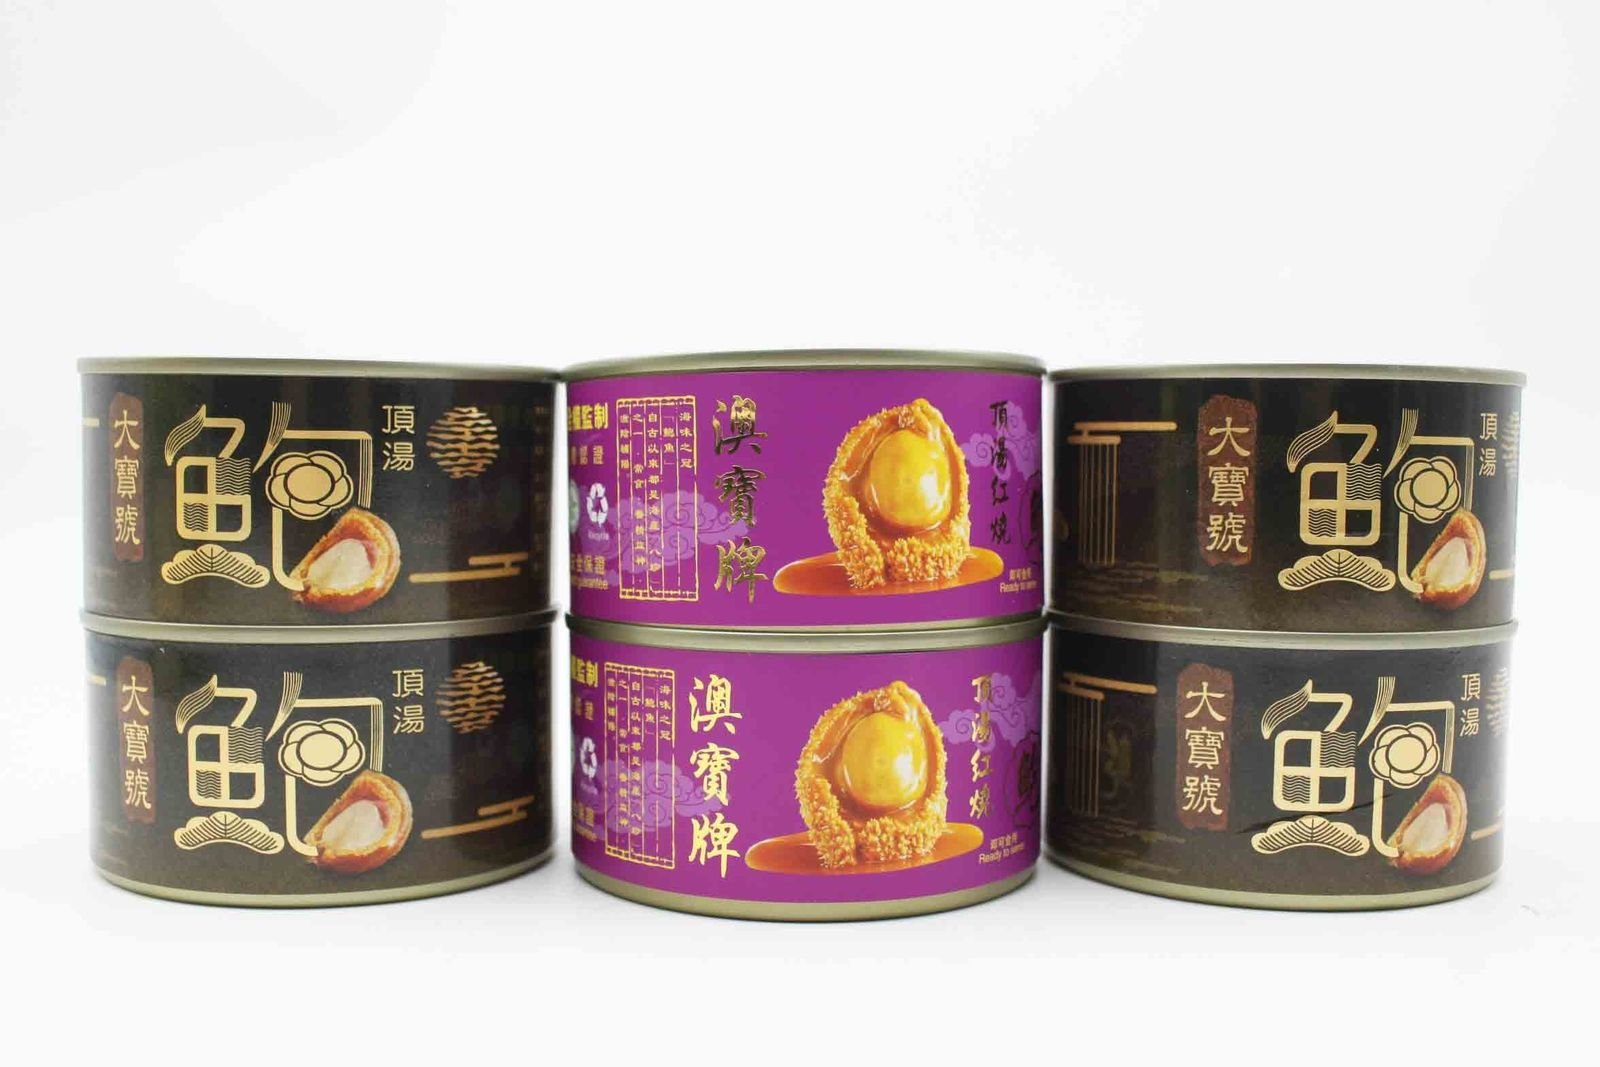 China Good Food Set-2 Canned abalone set 4 pieces & 6 pieces Total 6 Cans Free Airmail by China Good Food (Image #1)